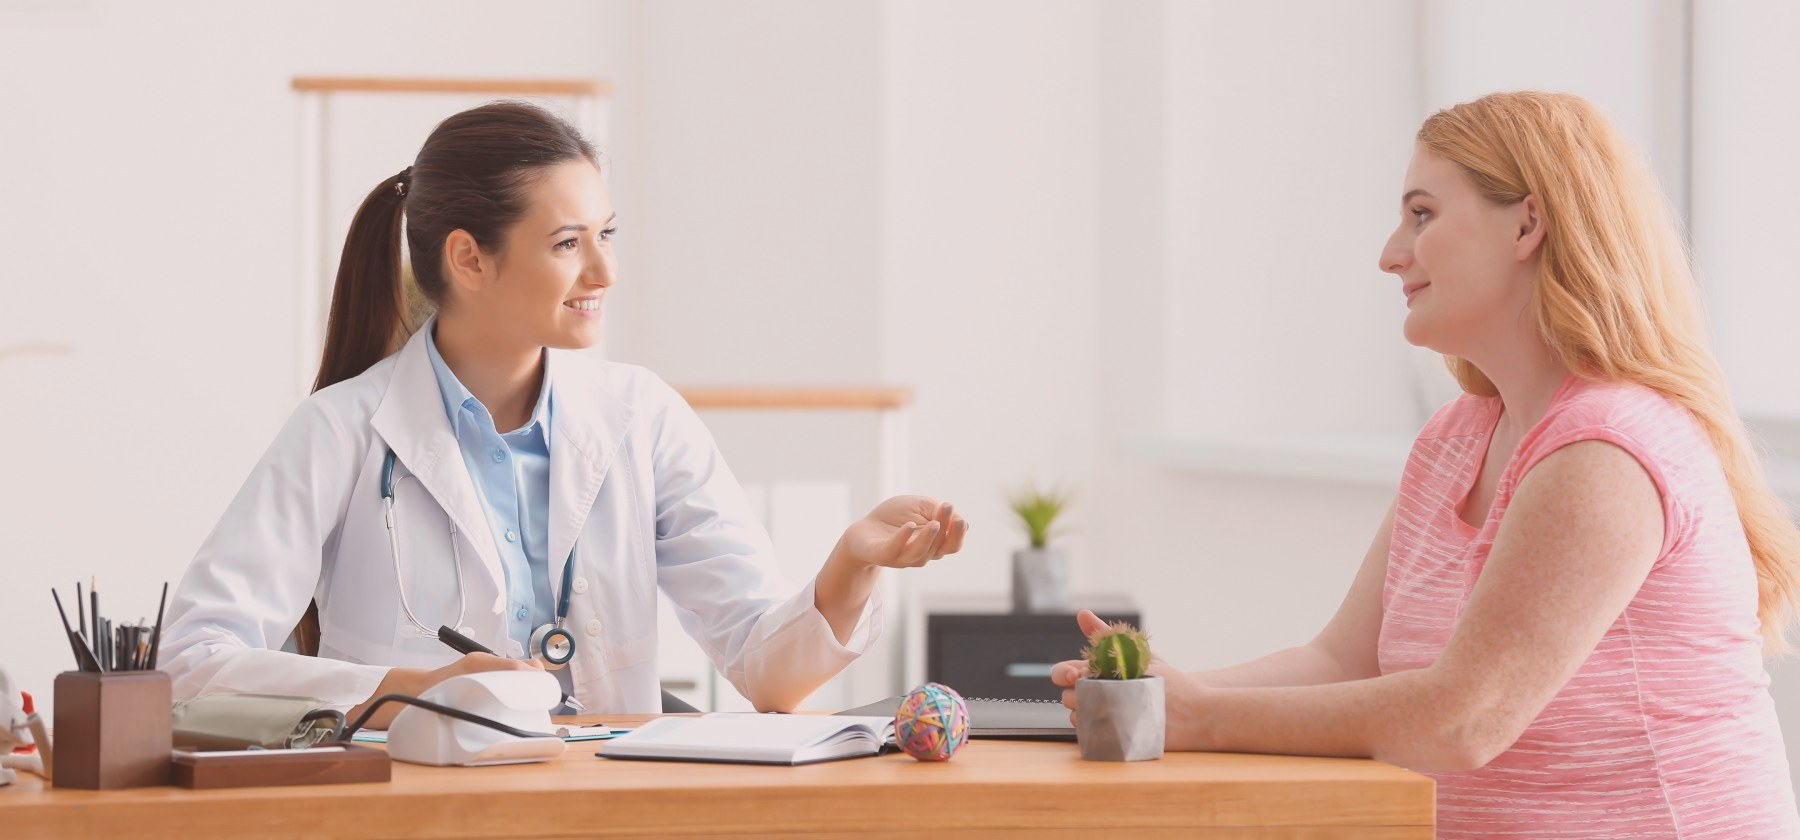 A woman engaging in a consultation with a doctor